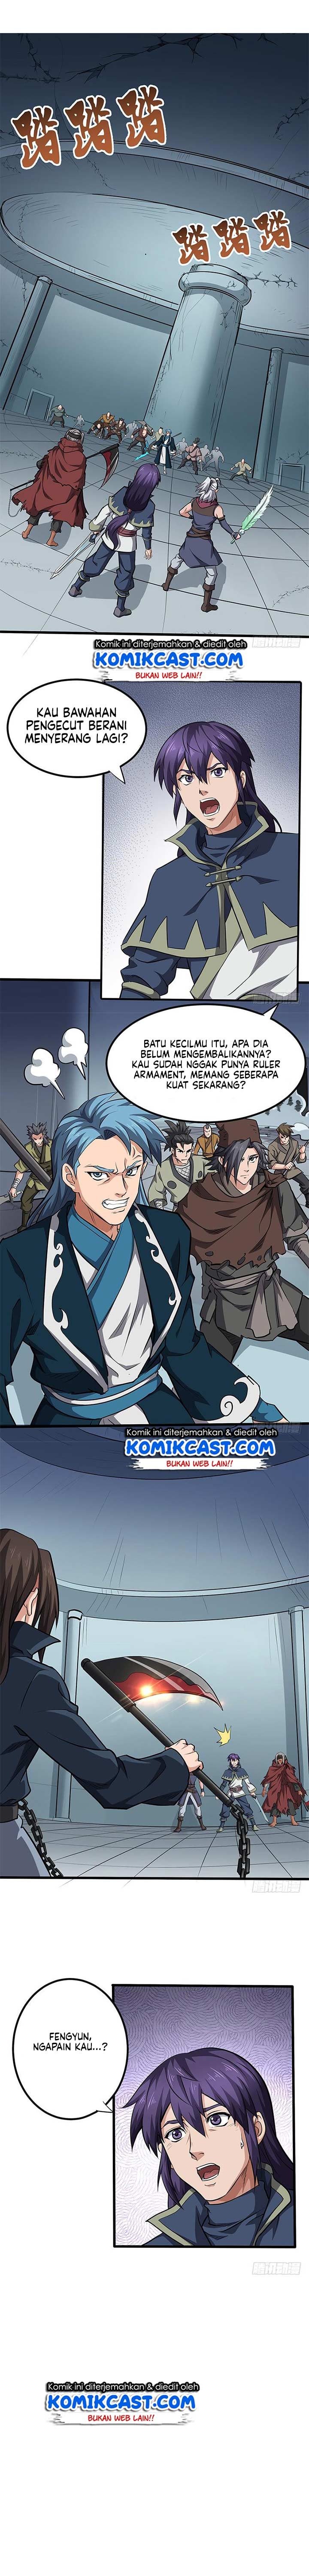 Chaotic Sword God Chapter 137